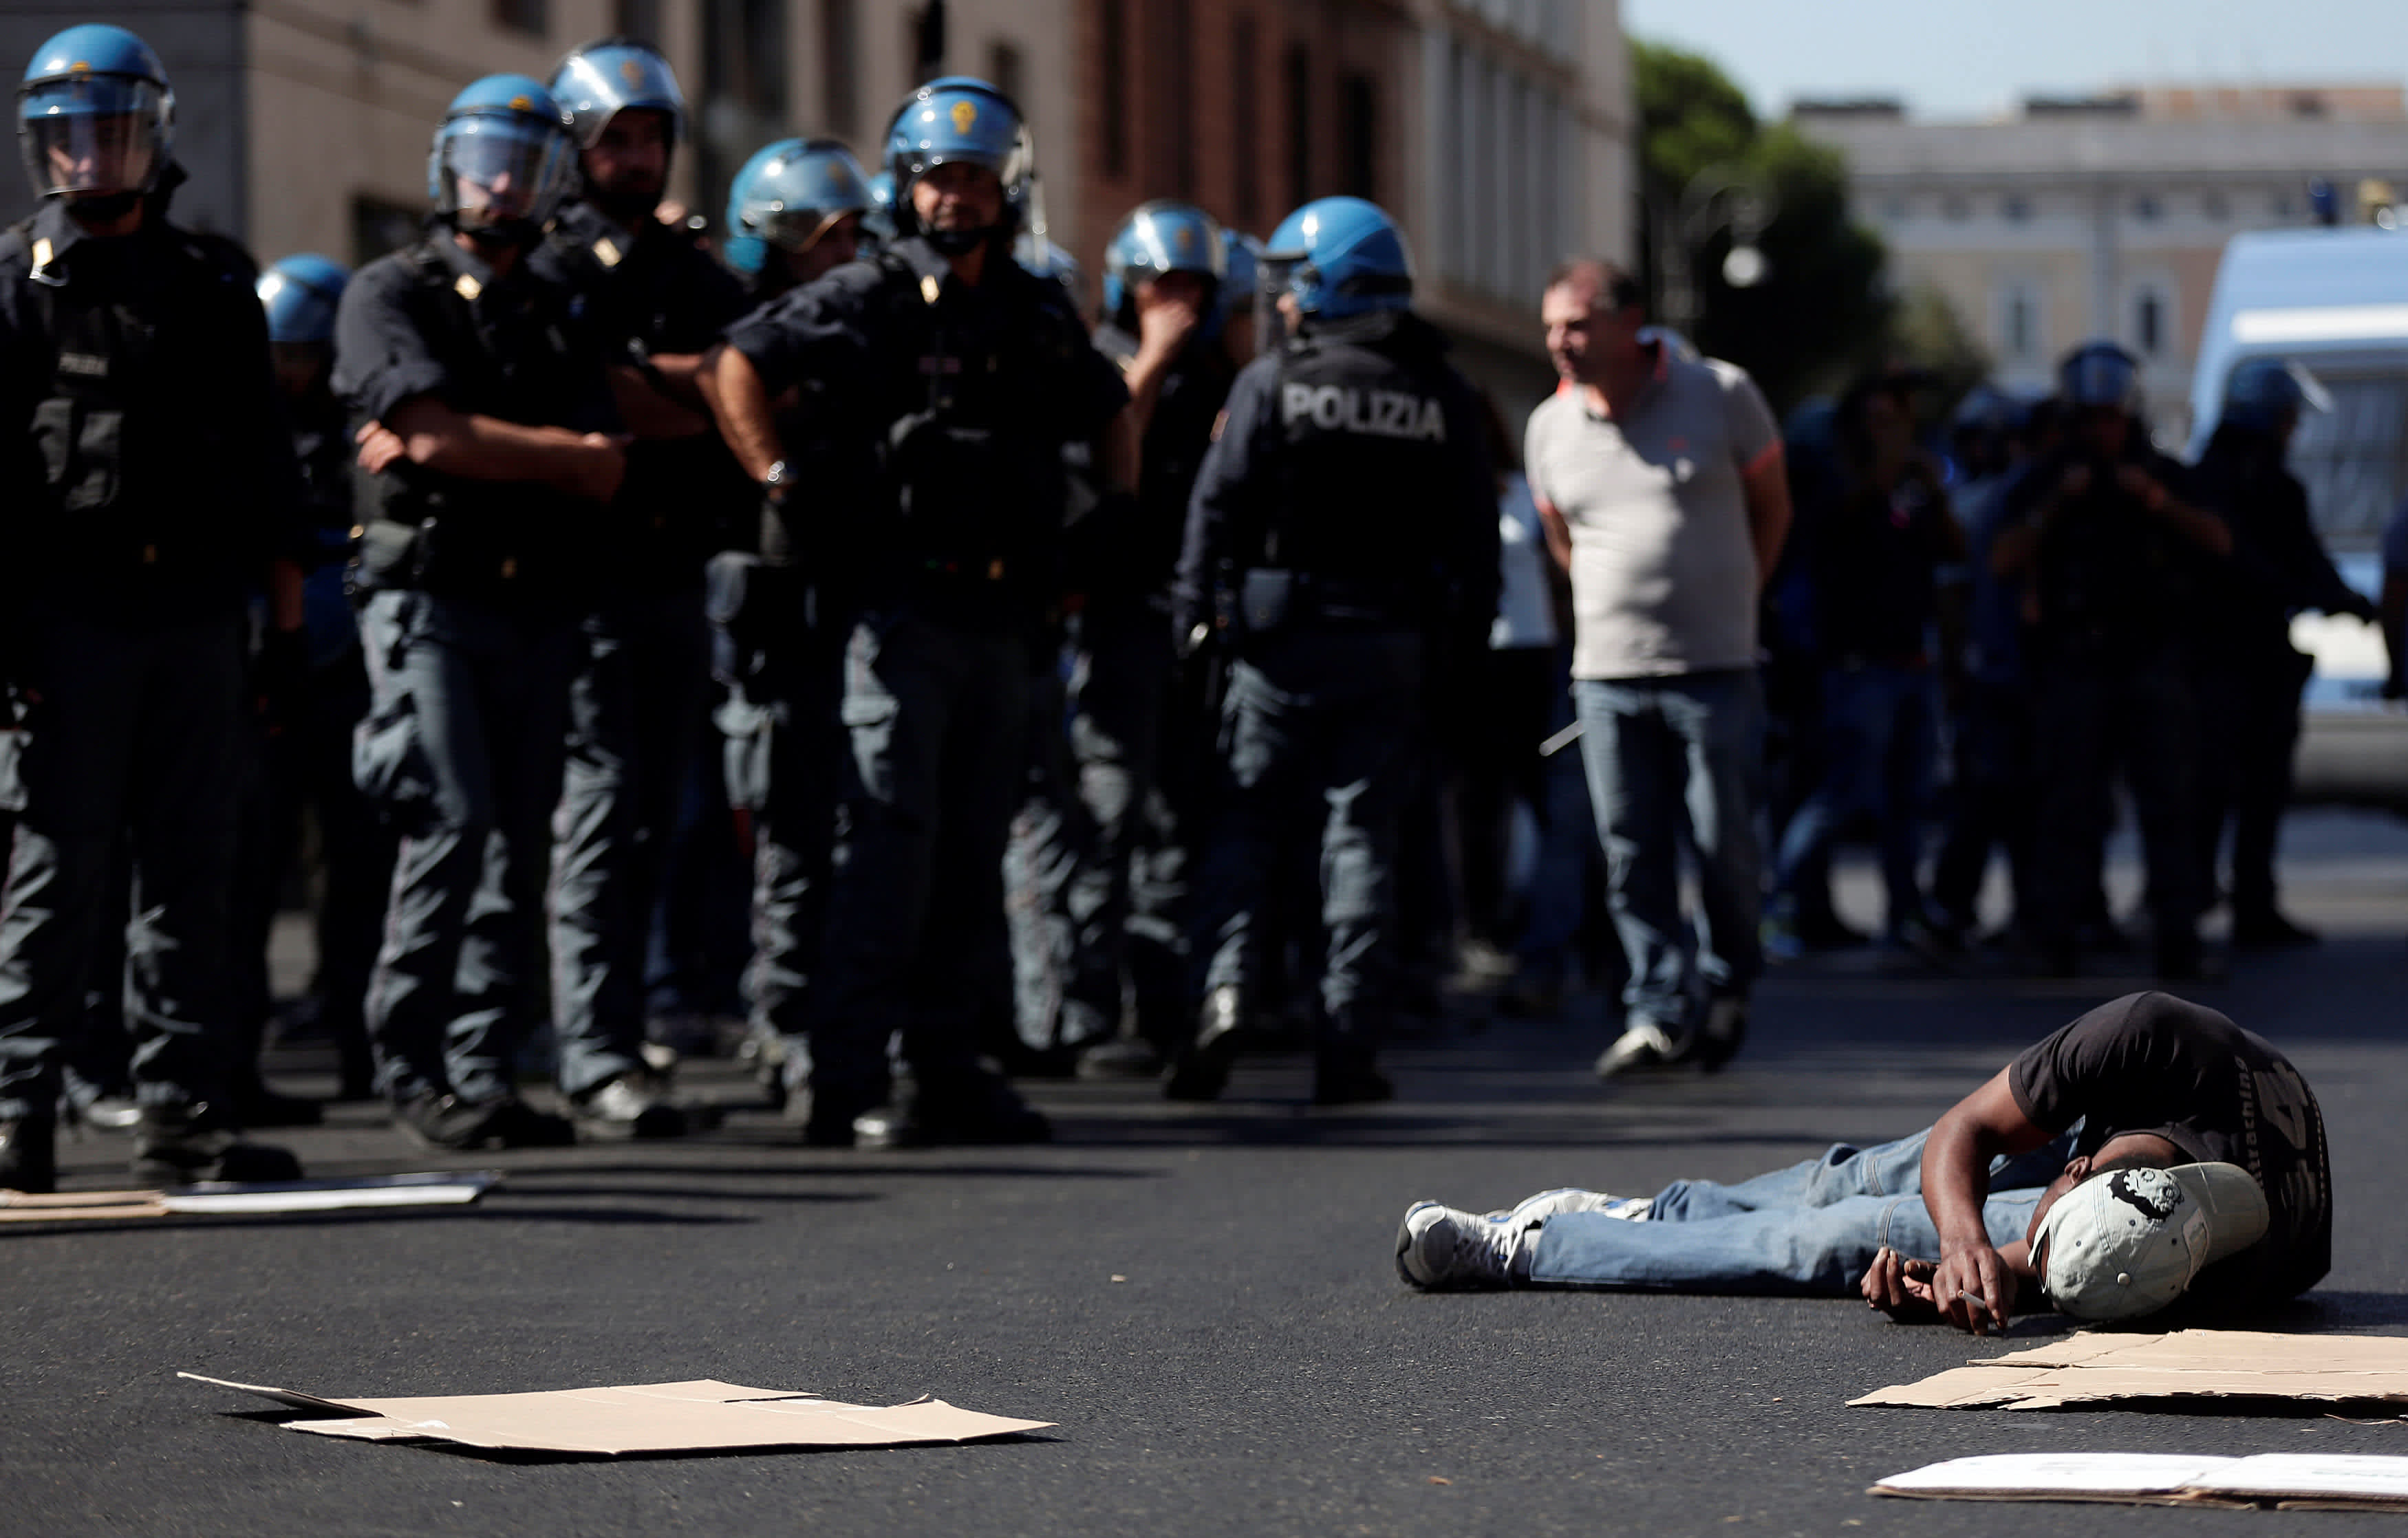 A refugee protests in the street after being forcibly removed from a building where he had been living, in central Rome, Italy August 23, 2017 (REUTERS/YARA NARDI)